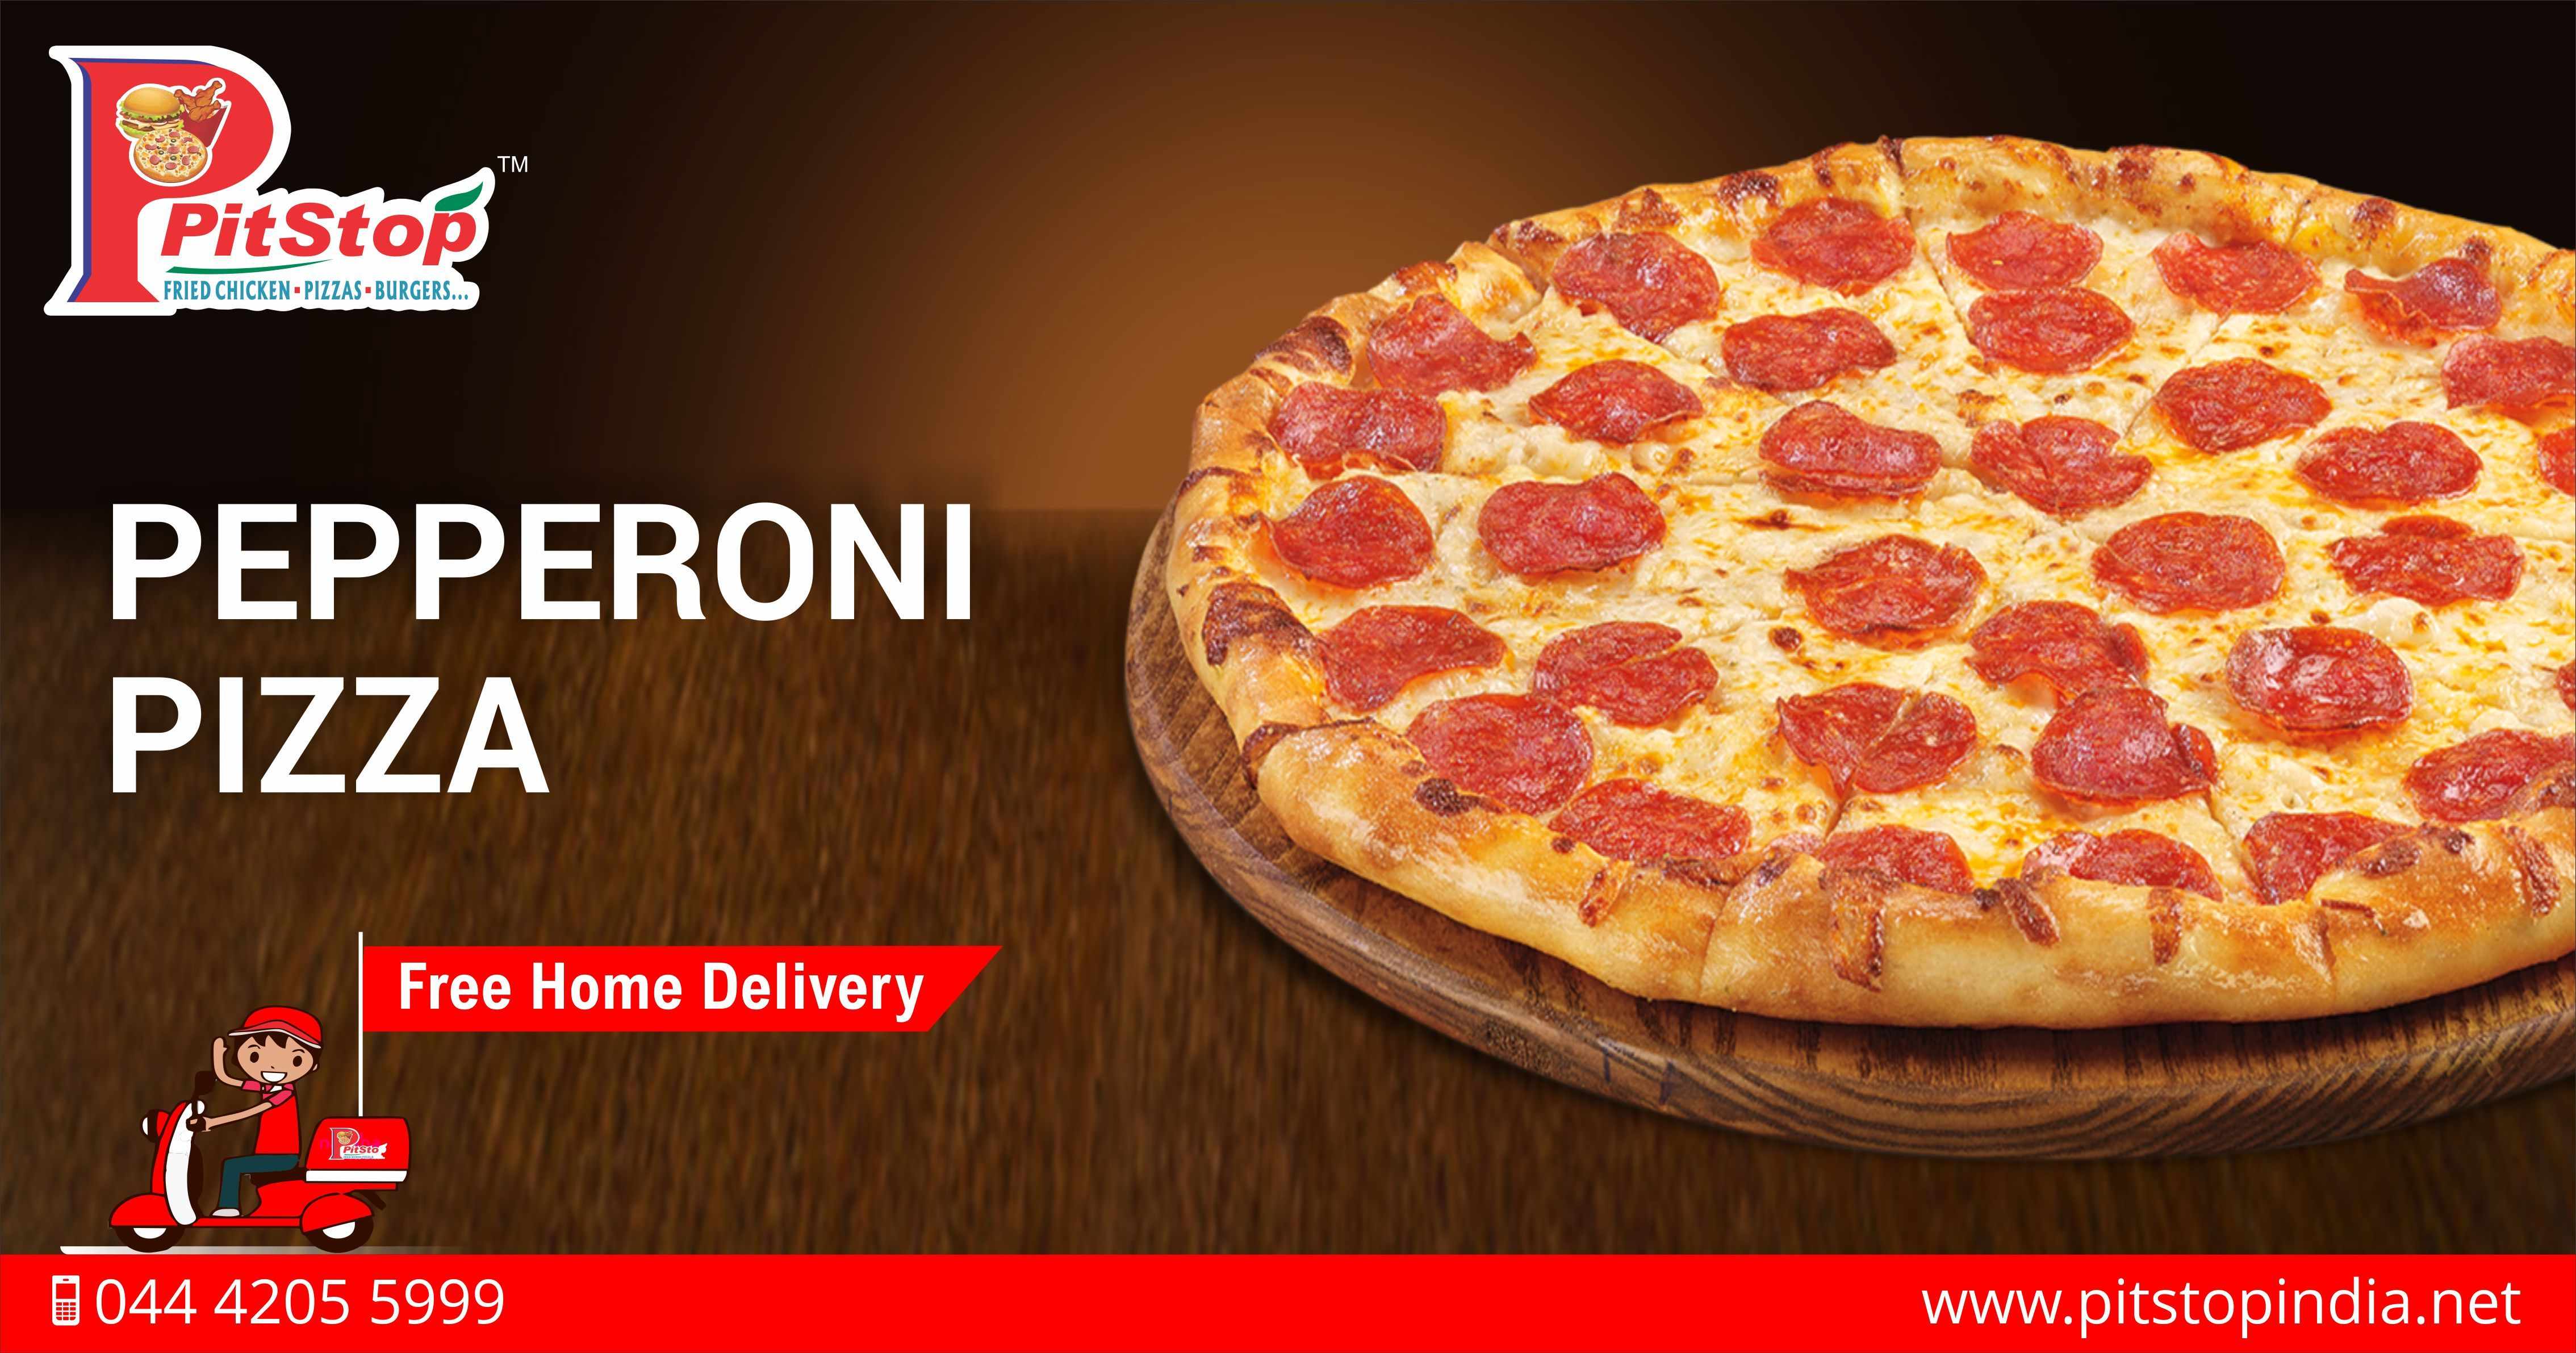 Order tasty Pepperoni Pizza online from www.pitstopindia